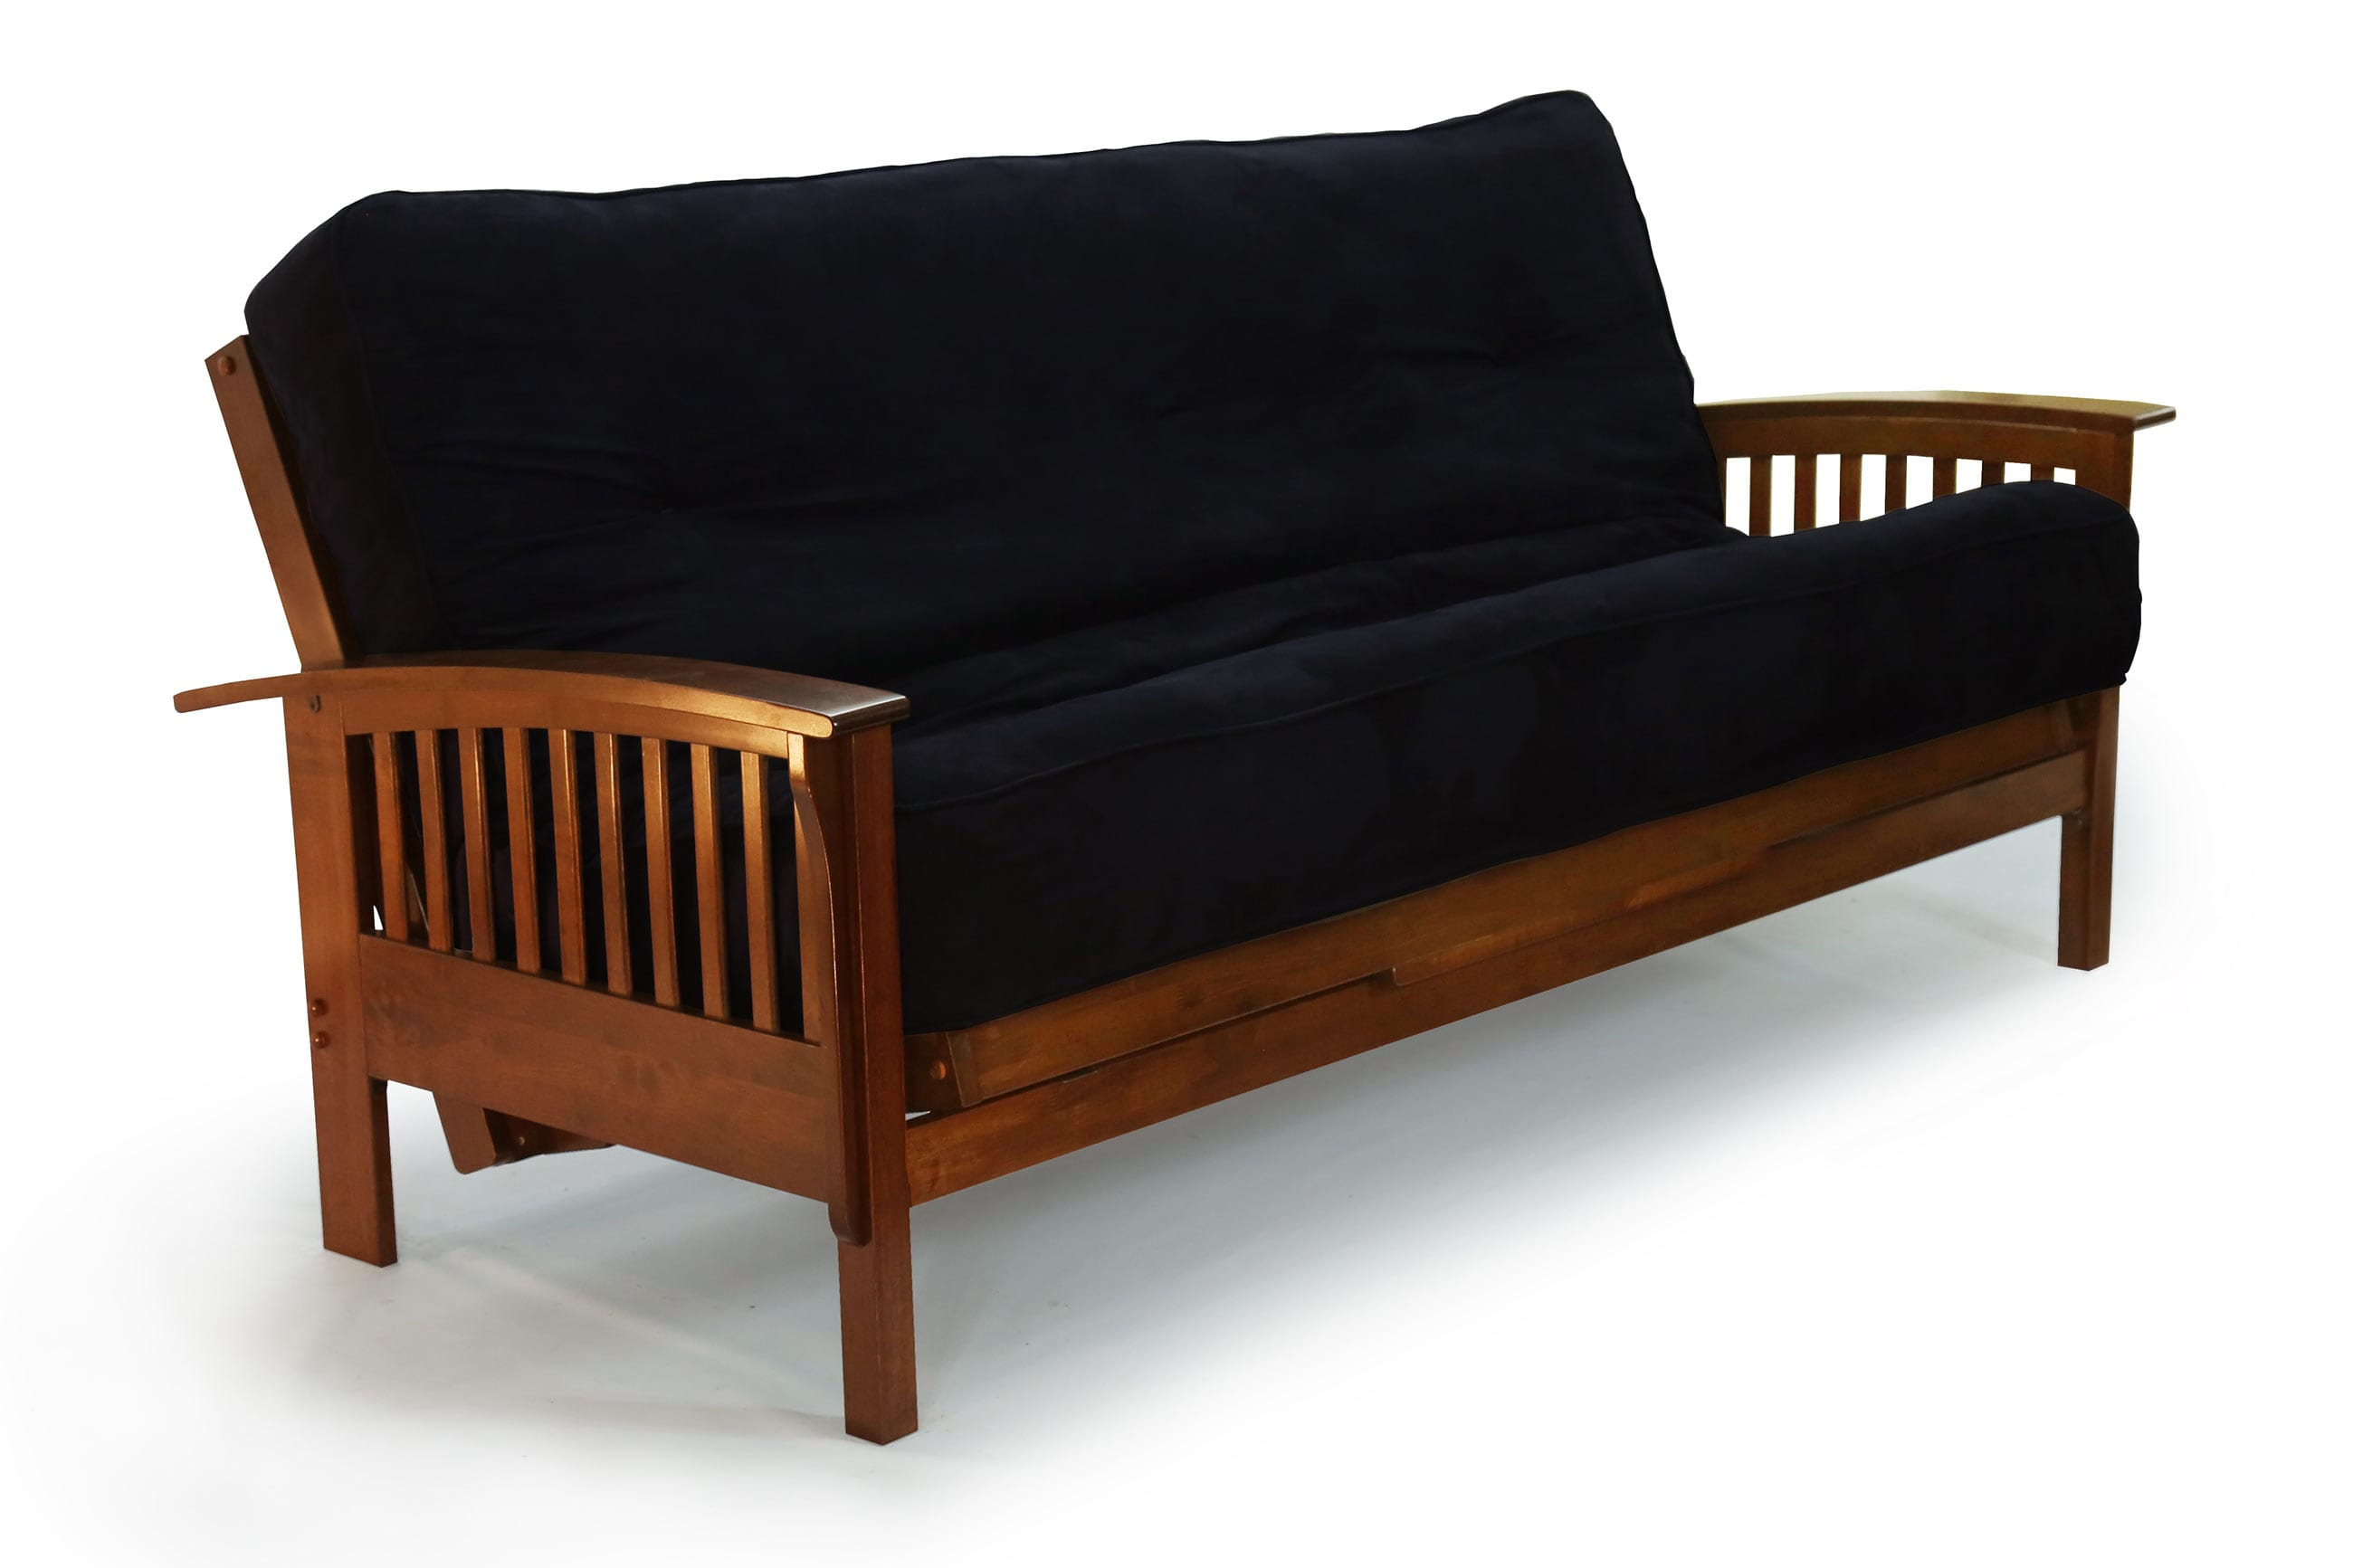 Winchester Futon Frame By Night Day Furniture